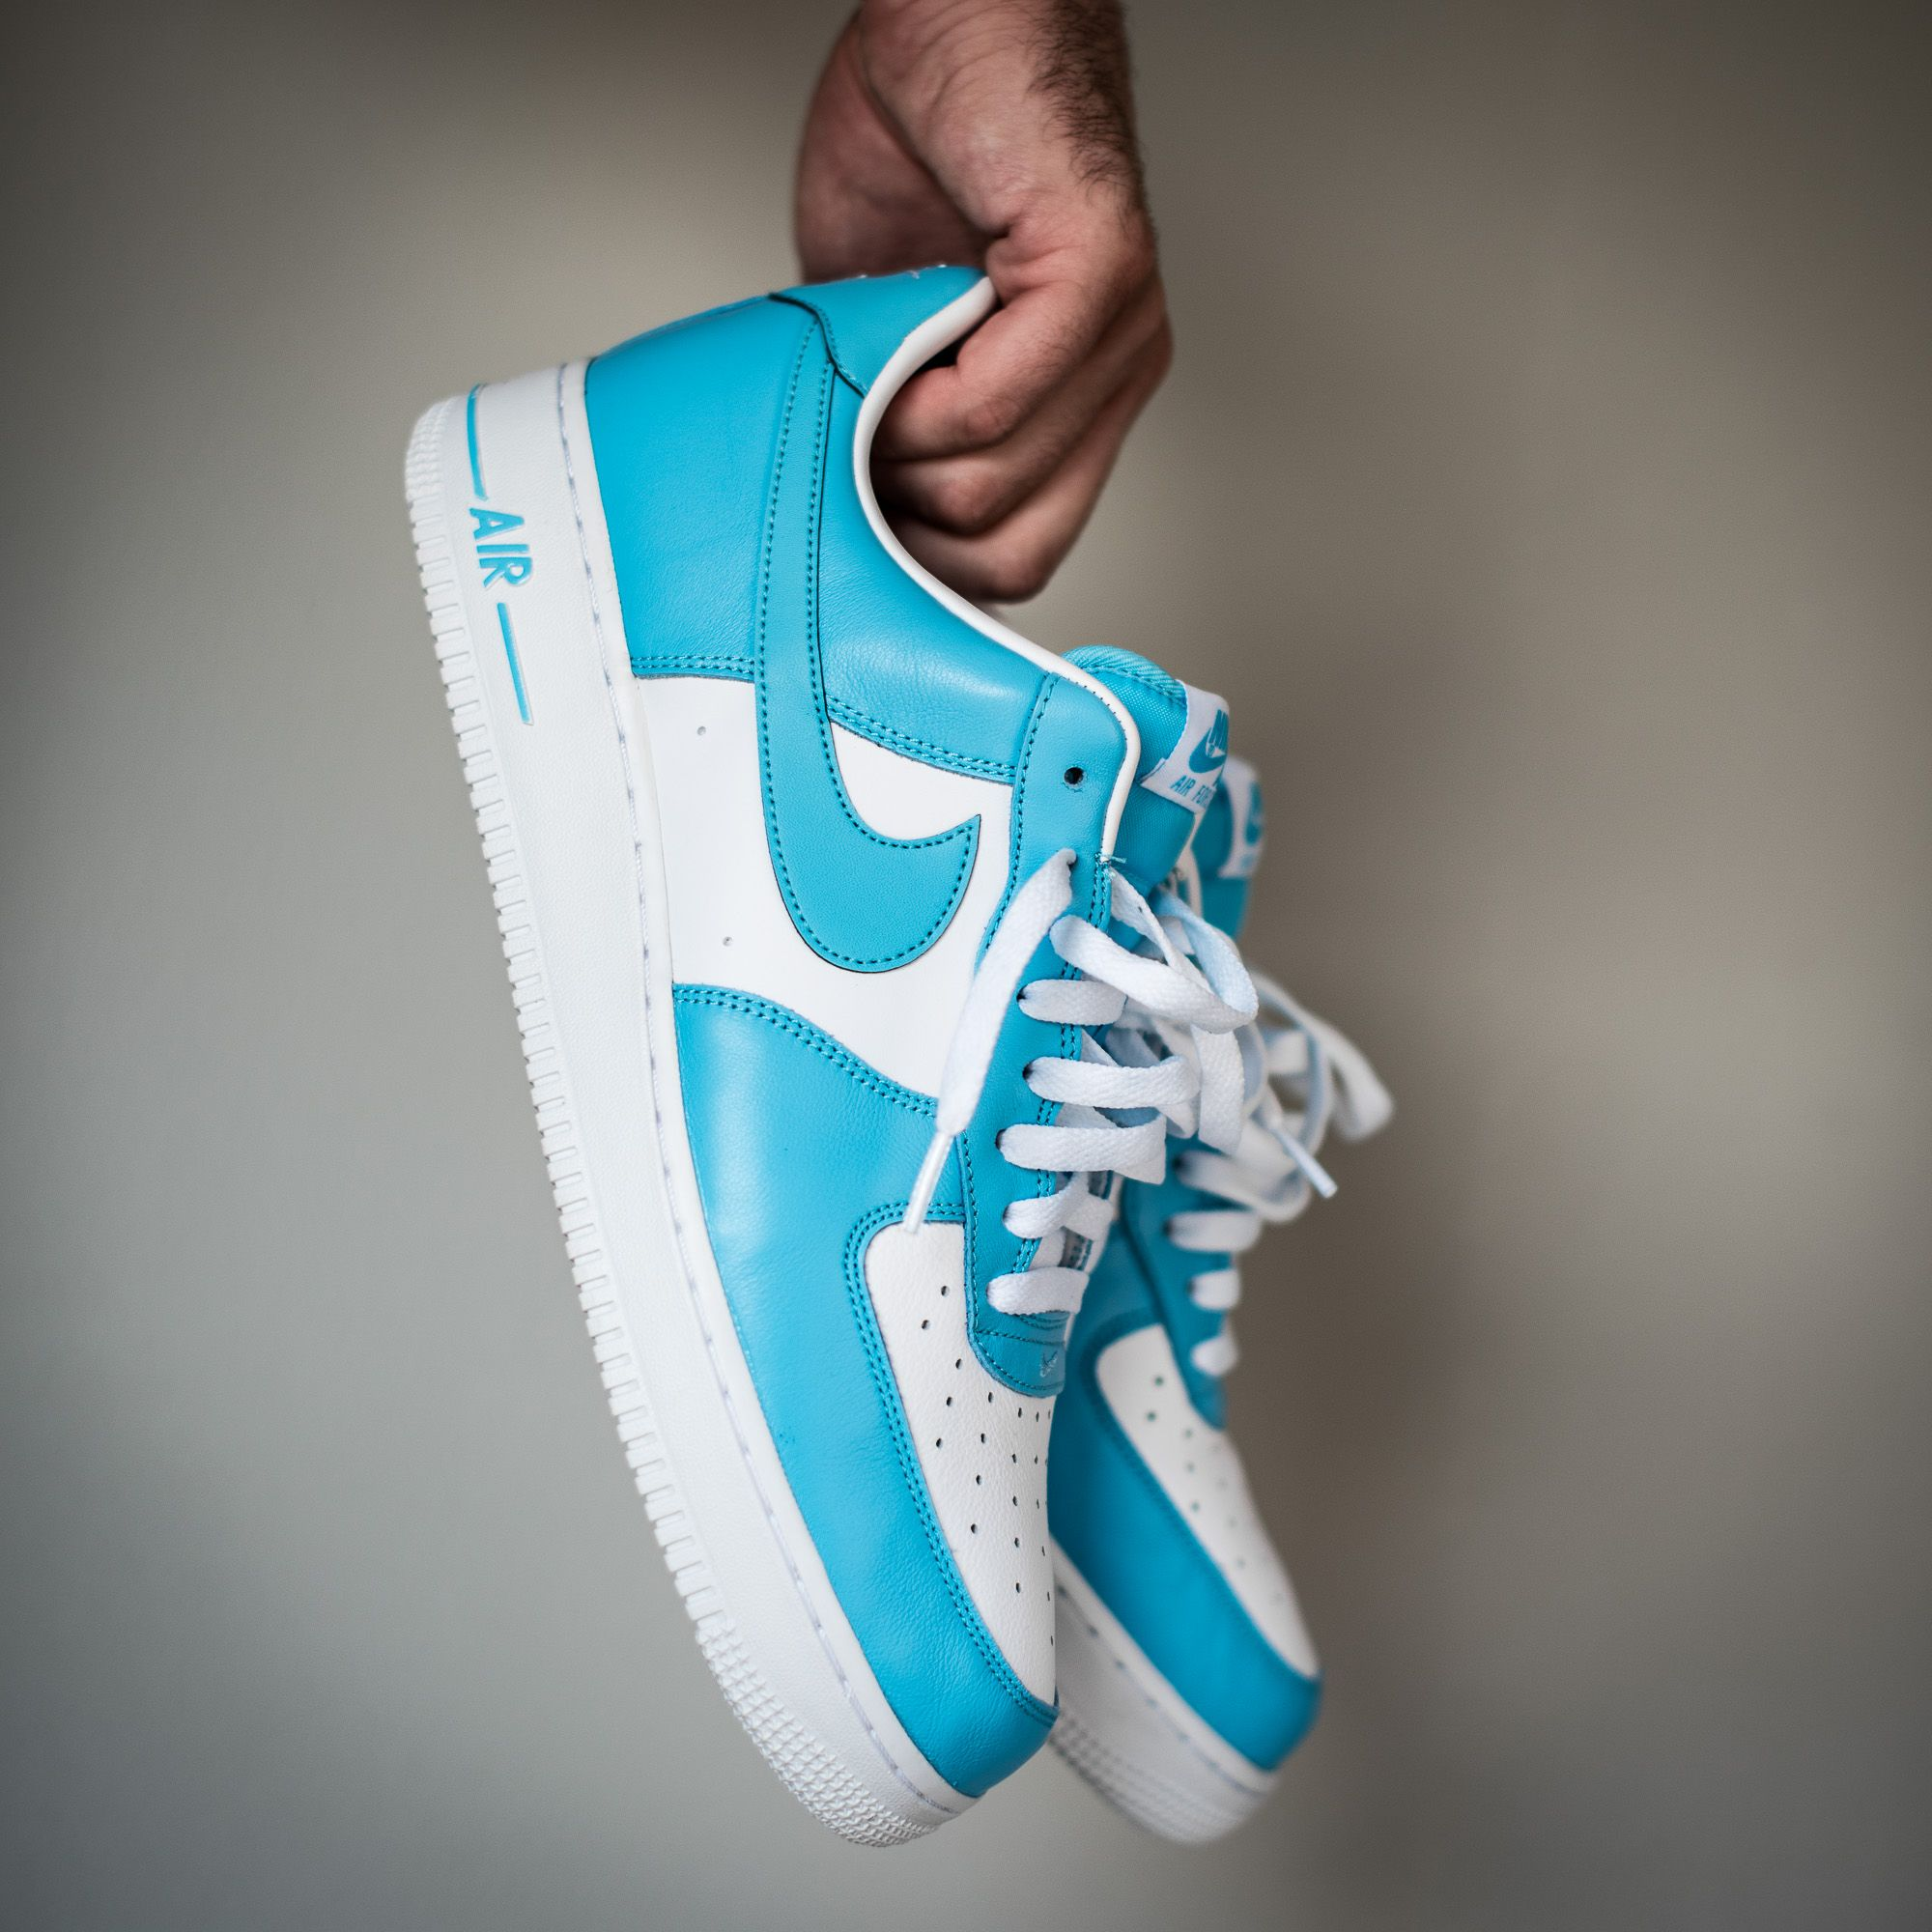 new arrival b9c64 a2887 The UNC-inspired Nike Air Force Low, officially dubbed as